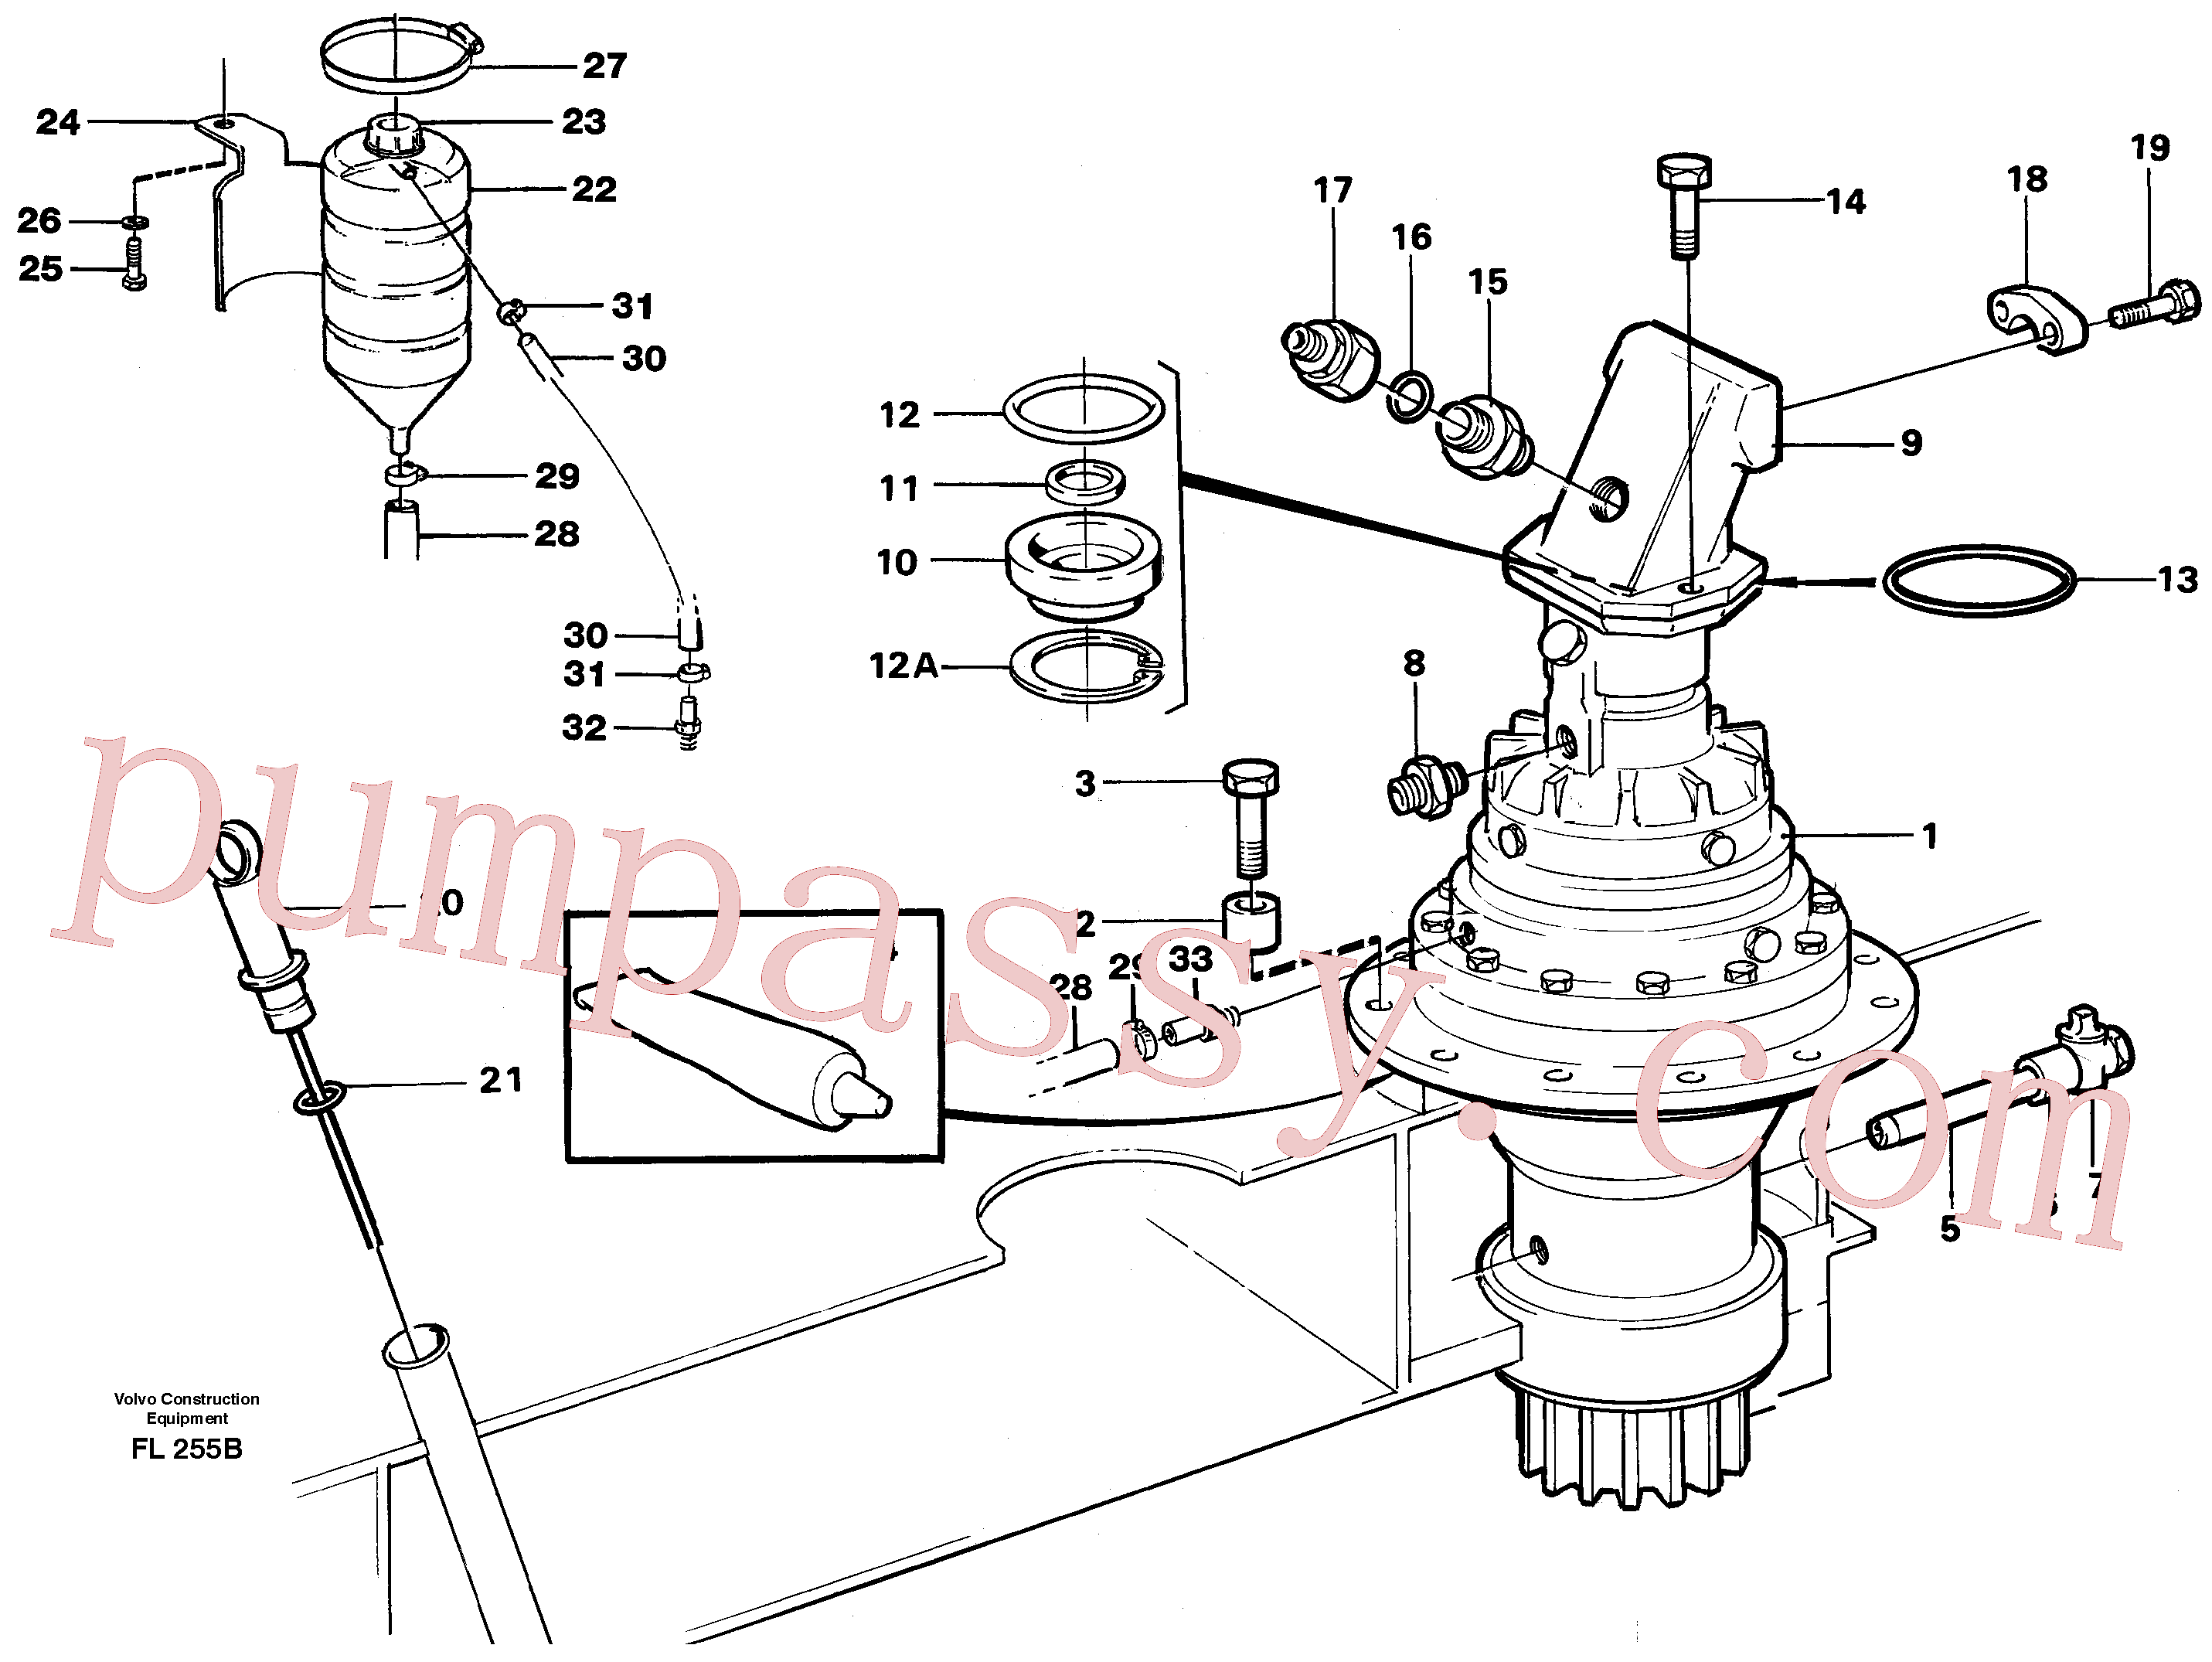 VOE11701460 for Volvo Superstructure with slew transmission(FL255B assembly)